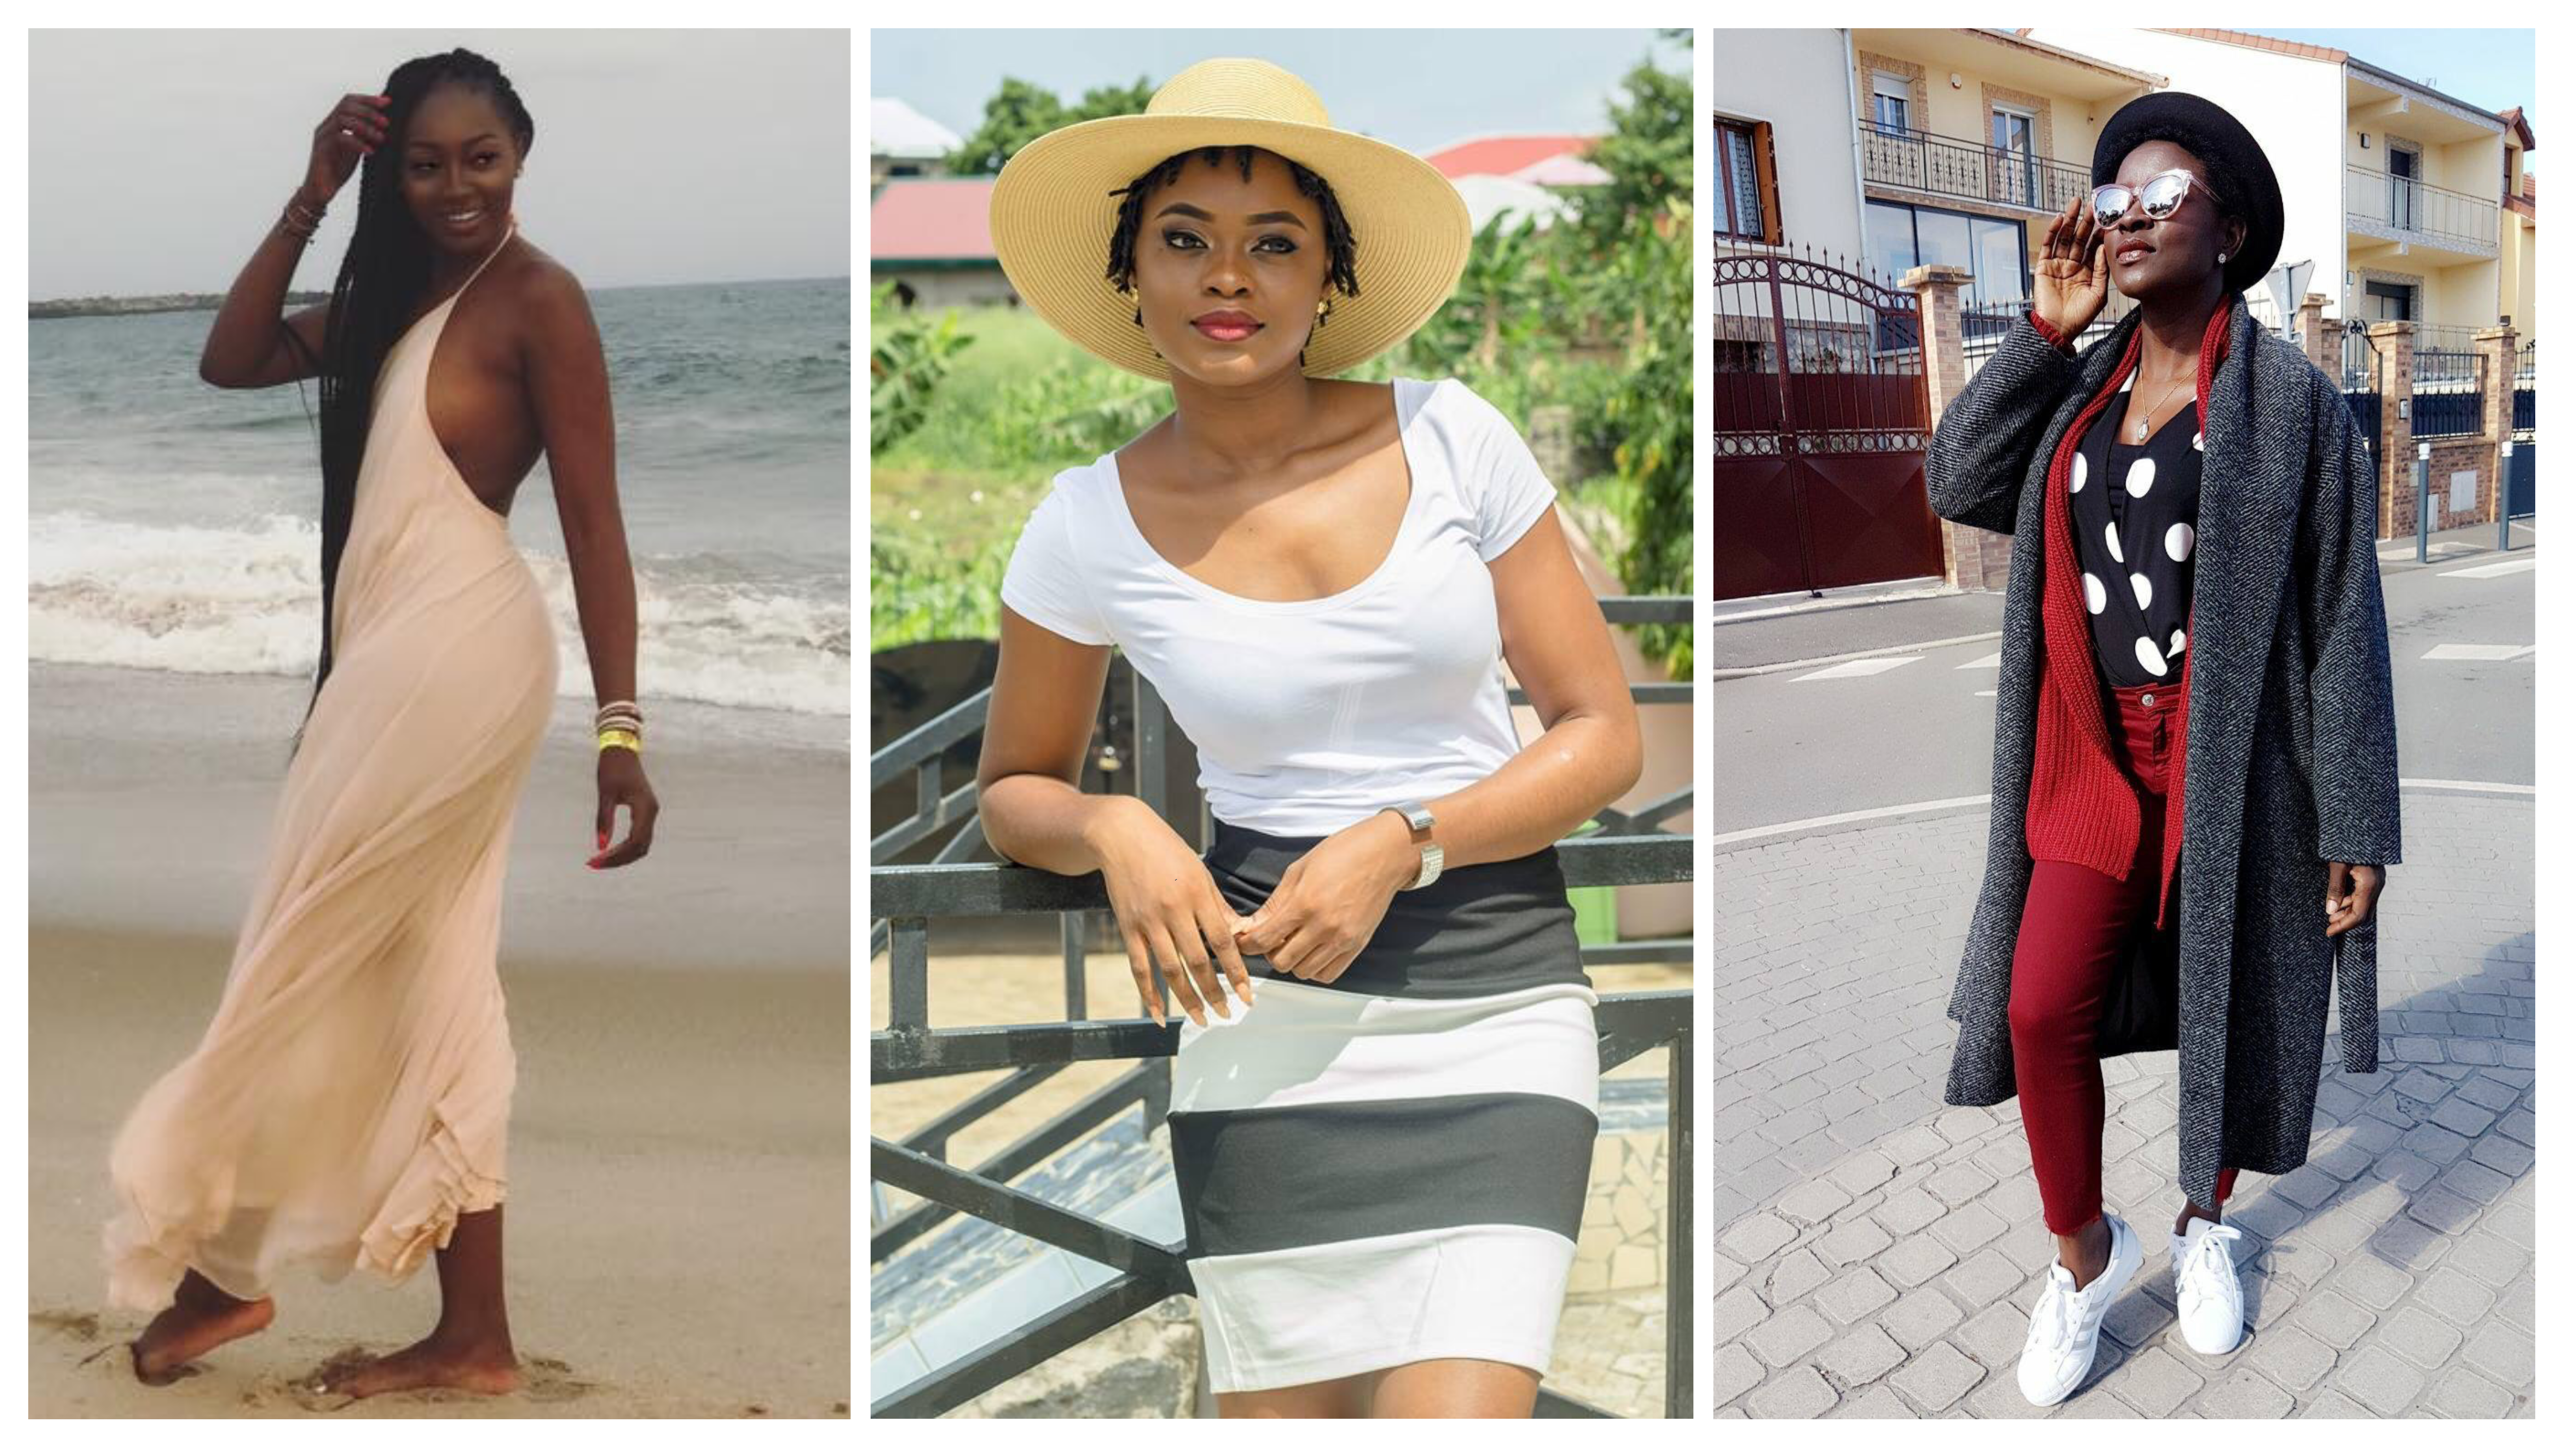 Cameroonian most stylish celebrities stree-style #streetstyle